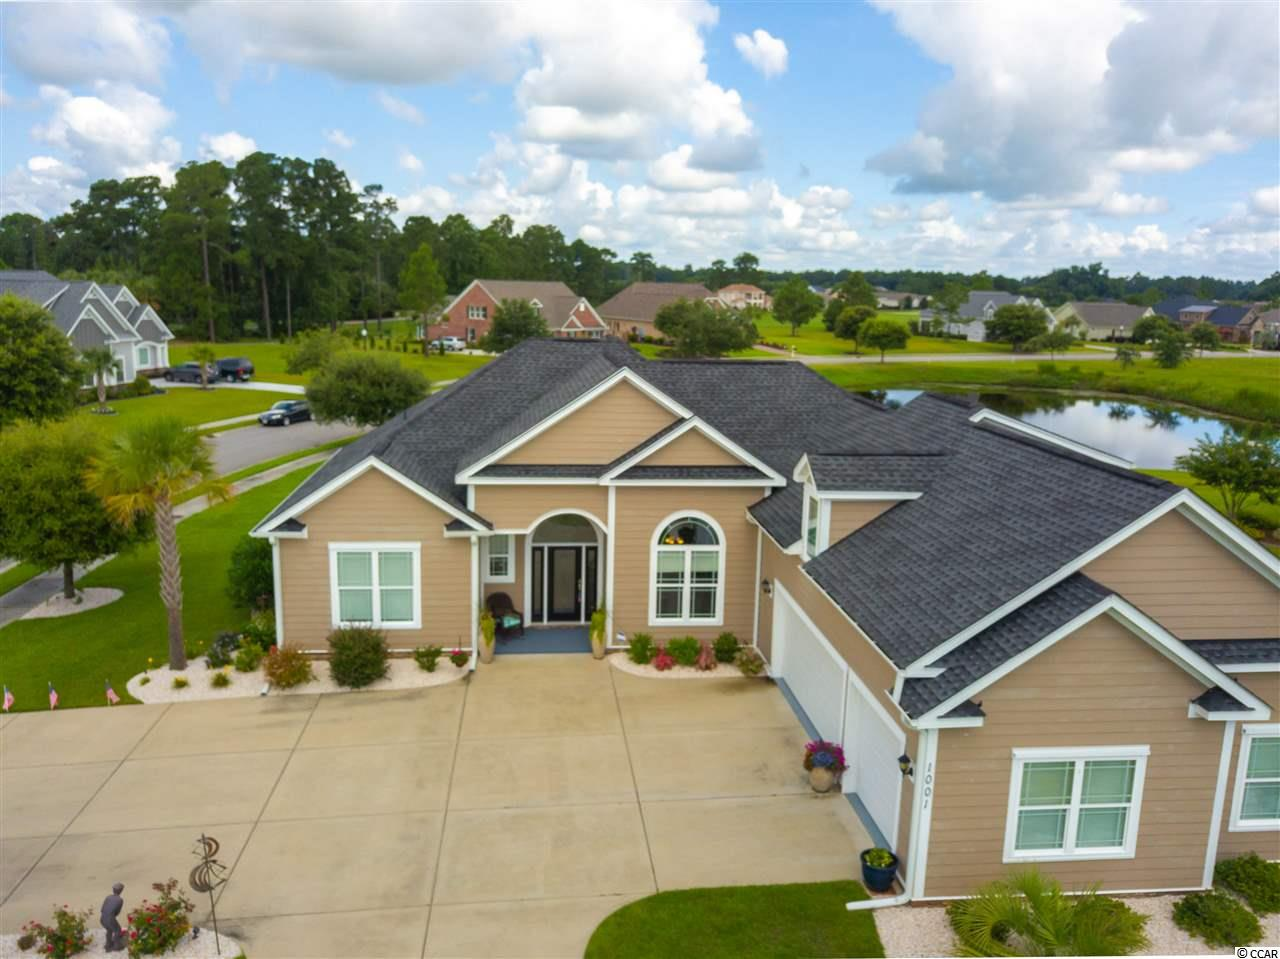 IMMACULATE, FULLY FURNISHED 4bd/3.5ba on a RARE .73 acre CORNER LOT ON THE LAKE. No one can build directly beside you and you have plenty of room for a pool! Spacious screened porch & 3-car garage - only 10 miles to the beach AND 5 miles to downtown historic Conway. Master and 2 other beds on the 1st flr and large bonus room w/ full bath over the garage- easily used as a play room, craft room, office, or 4th bed. This home boasts lots of great features including 12ft ceilings in the living areas, an eat-in kitchen w/ stainless steel appliances, irrigation system with separate meter, granite counters, lots of storage, walk-in closets, formal dining, and much more. House does not require flood insurance but wired for a generator and ready to go with easy to install hurricane shutters.  The beautiful & highly desired golf community of Wild Wing Plantation offers sidewalk streets, a beautiful clubhouse, pool, basketball court, RV/boat storage and leisurely views of the lakes and popular Hummingbird golf course.  Conway is just a short drive to everything Myrtle Beach has to offer including Coastal Grande Mall, Tanger Outlets, marinas, public docks, landings, restaurants, golf courses, shops, entertainment, Myrtle Beach International Airport, Broadway At The Beach, The Market Common, Barefoot Resort and Coastal Carolina University (CCU). Also, only 90 miles to beautiful Charleston, SC!